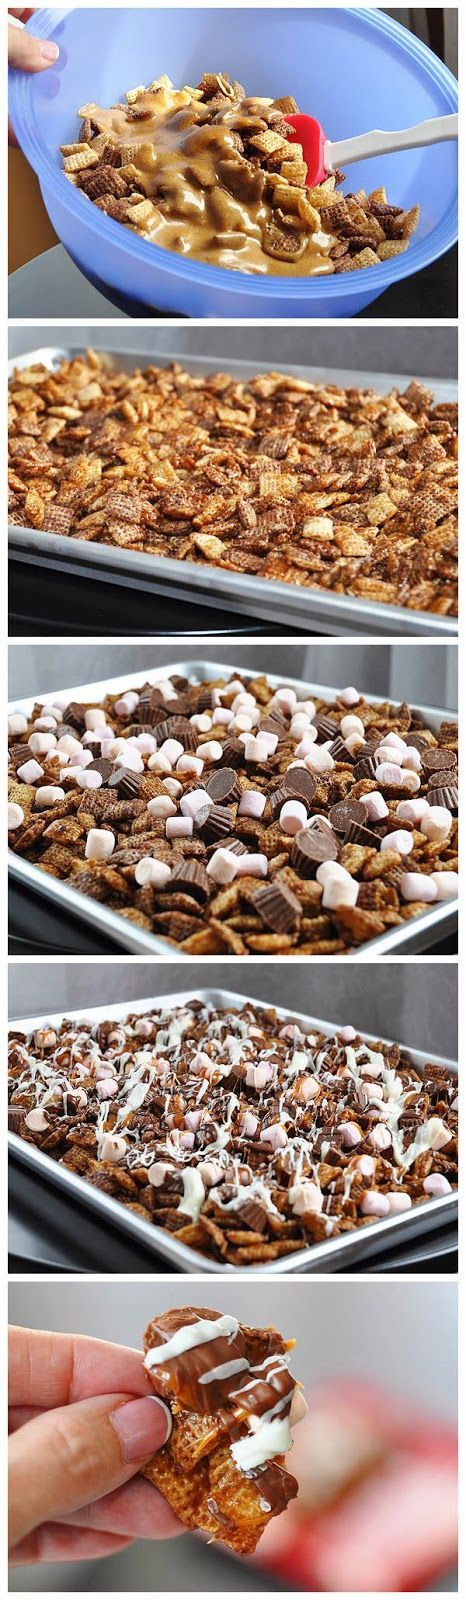 Better Than Sex Chex Mix! Seriously, you won't be able to stop eating this. It is heavenly and sinful at the same time.      Ingredients:   ...